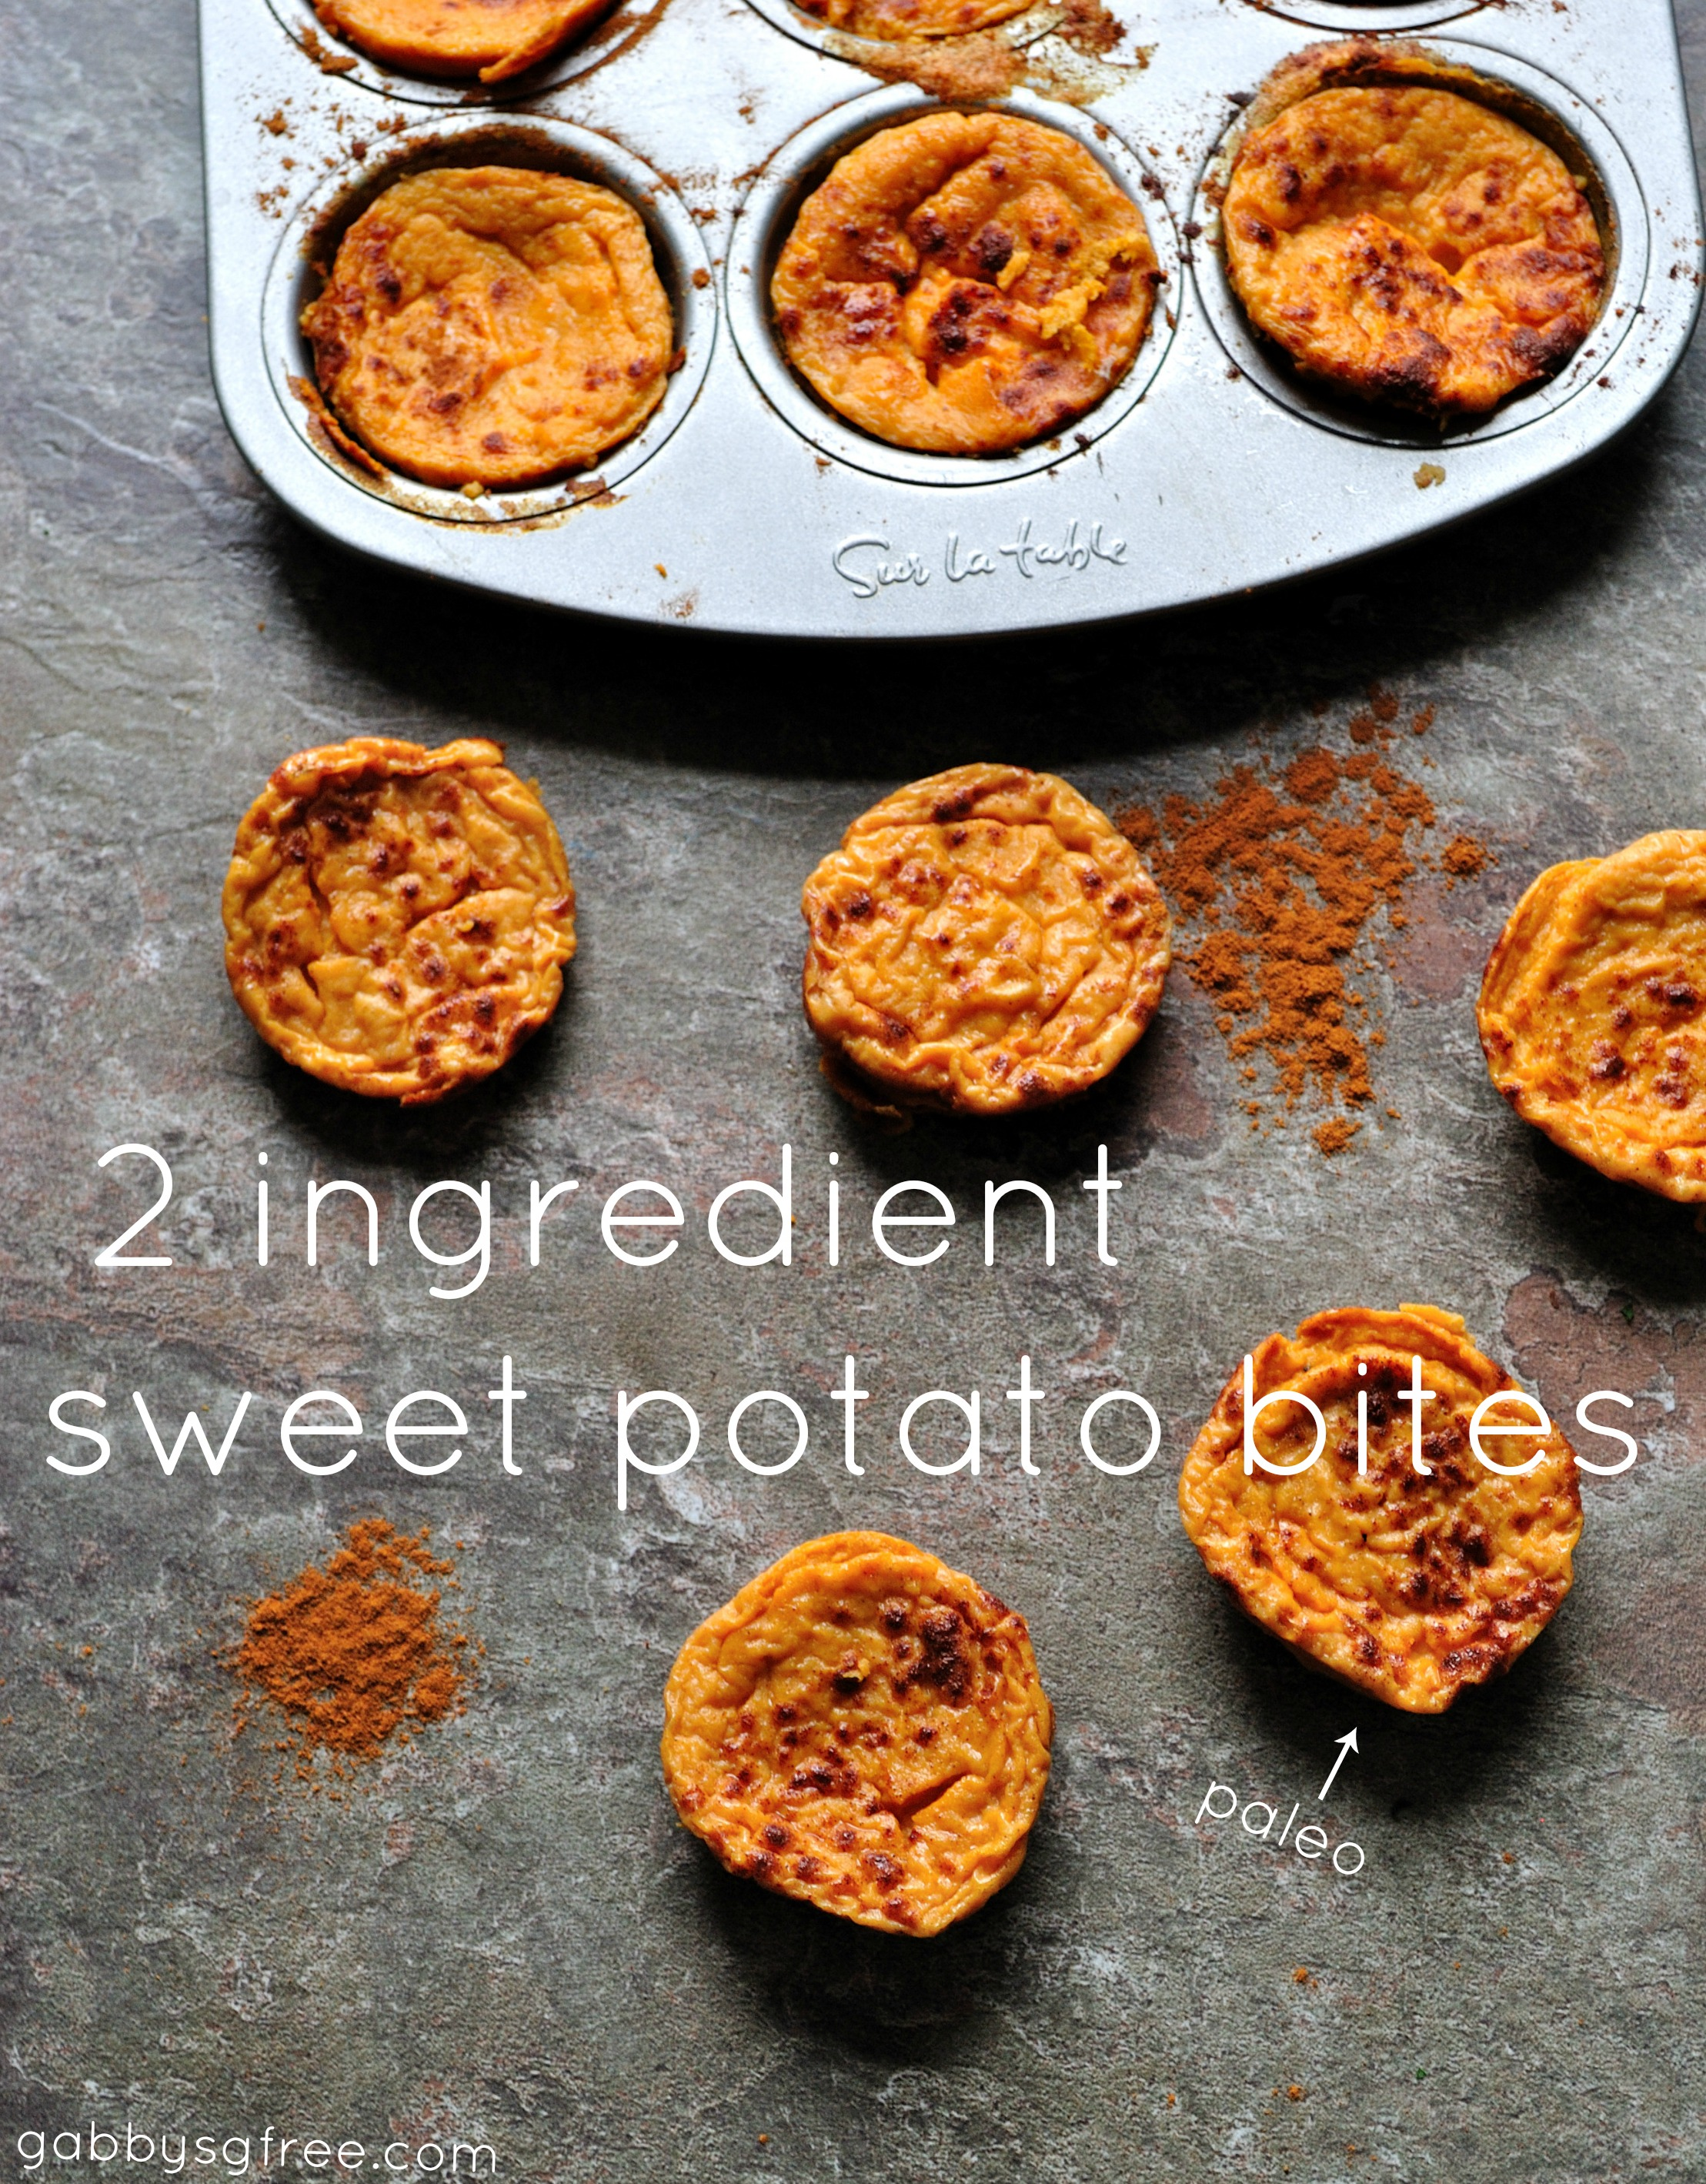 sweetpotatobites